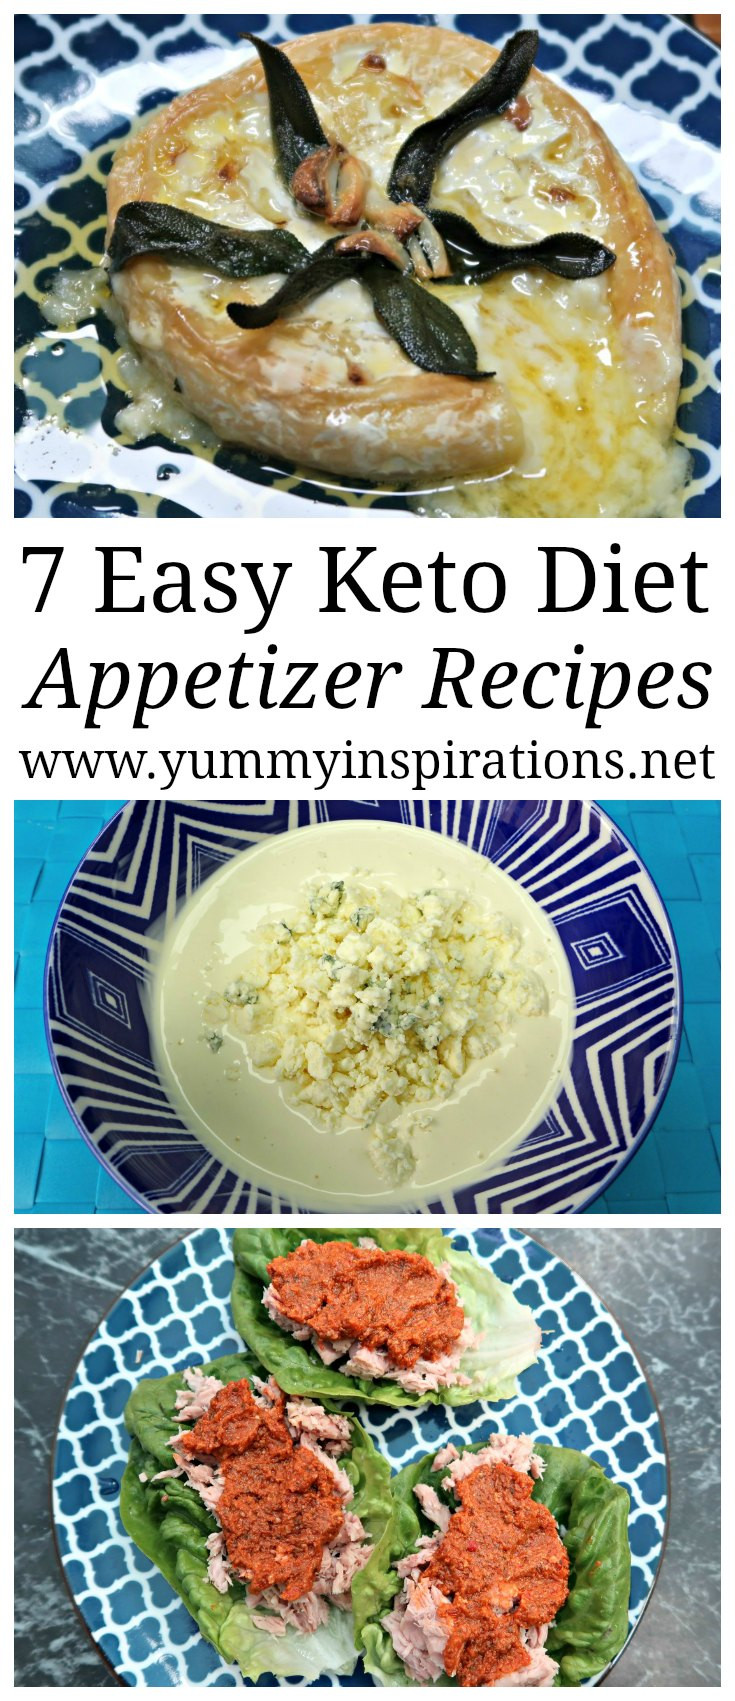 Keto Diet Recipes Free  7 Easy Keto Appetizers Recipes Simple Low Carb Appetizer